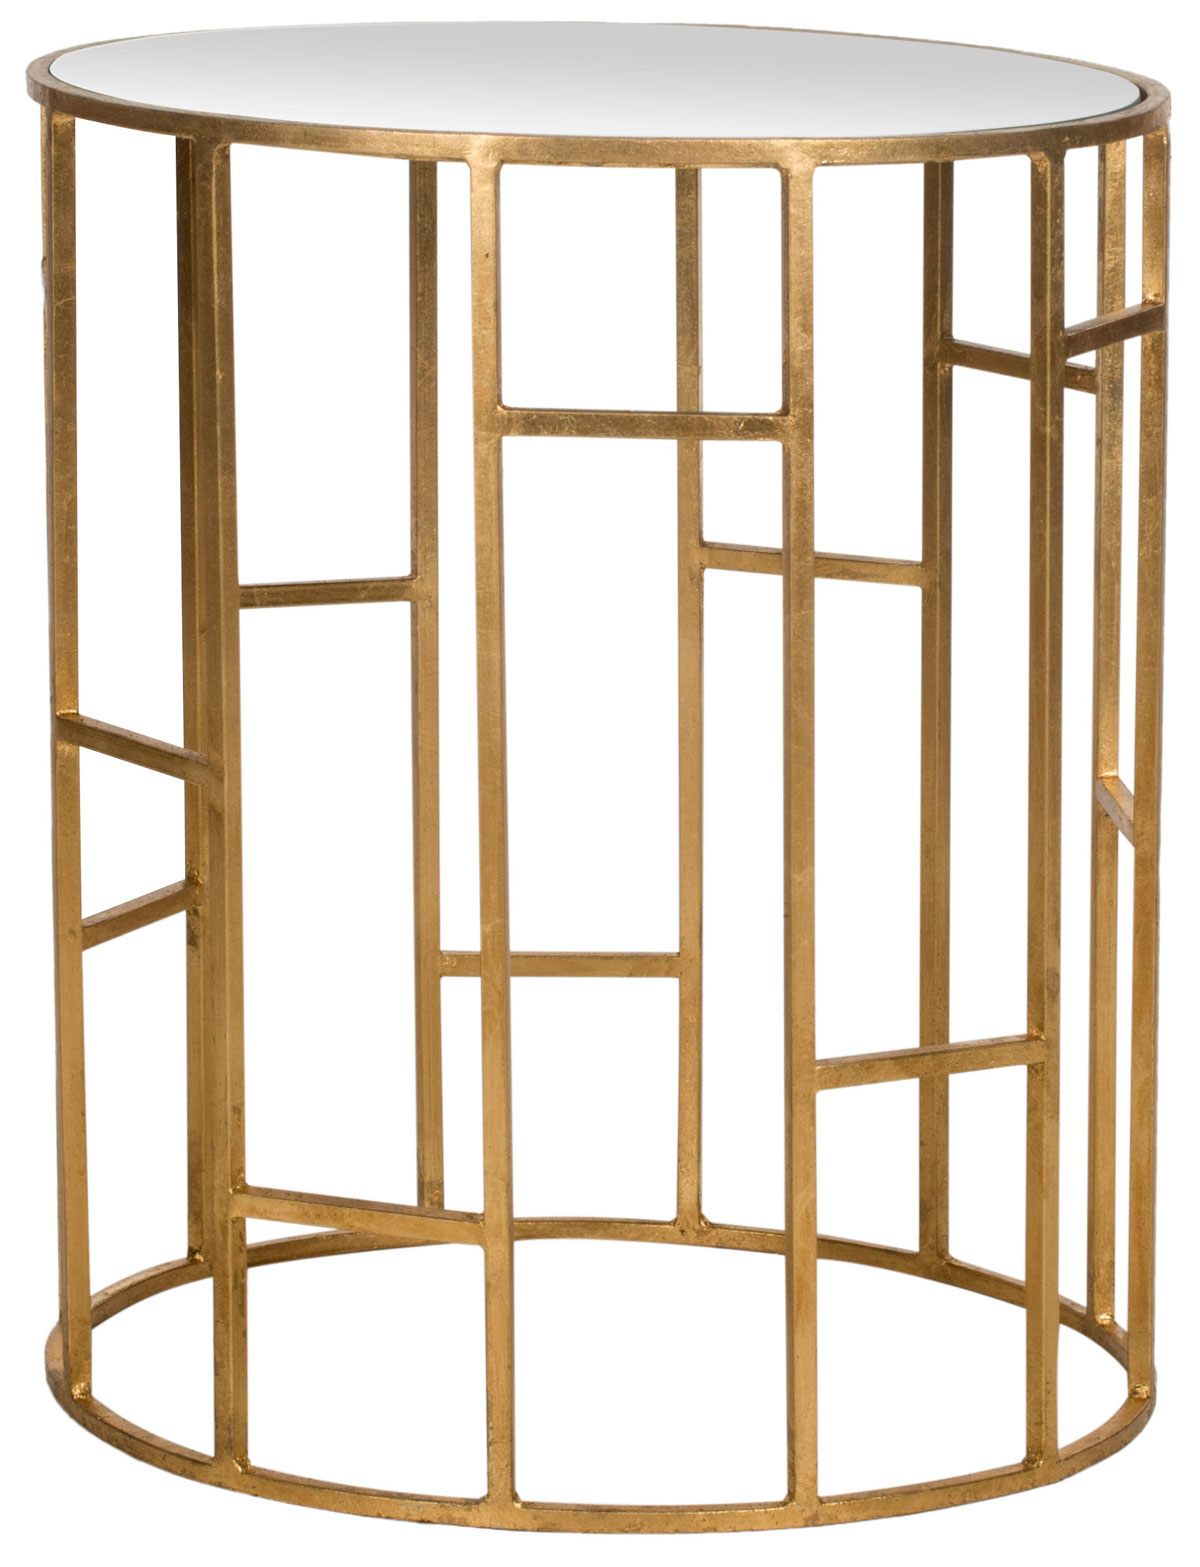 accent tables furniture safavieh front gold table share this product big lots mirrored bedside lockers shaped office desk metal chairside paint storage cabinet target rose solid